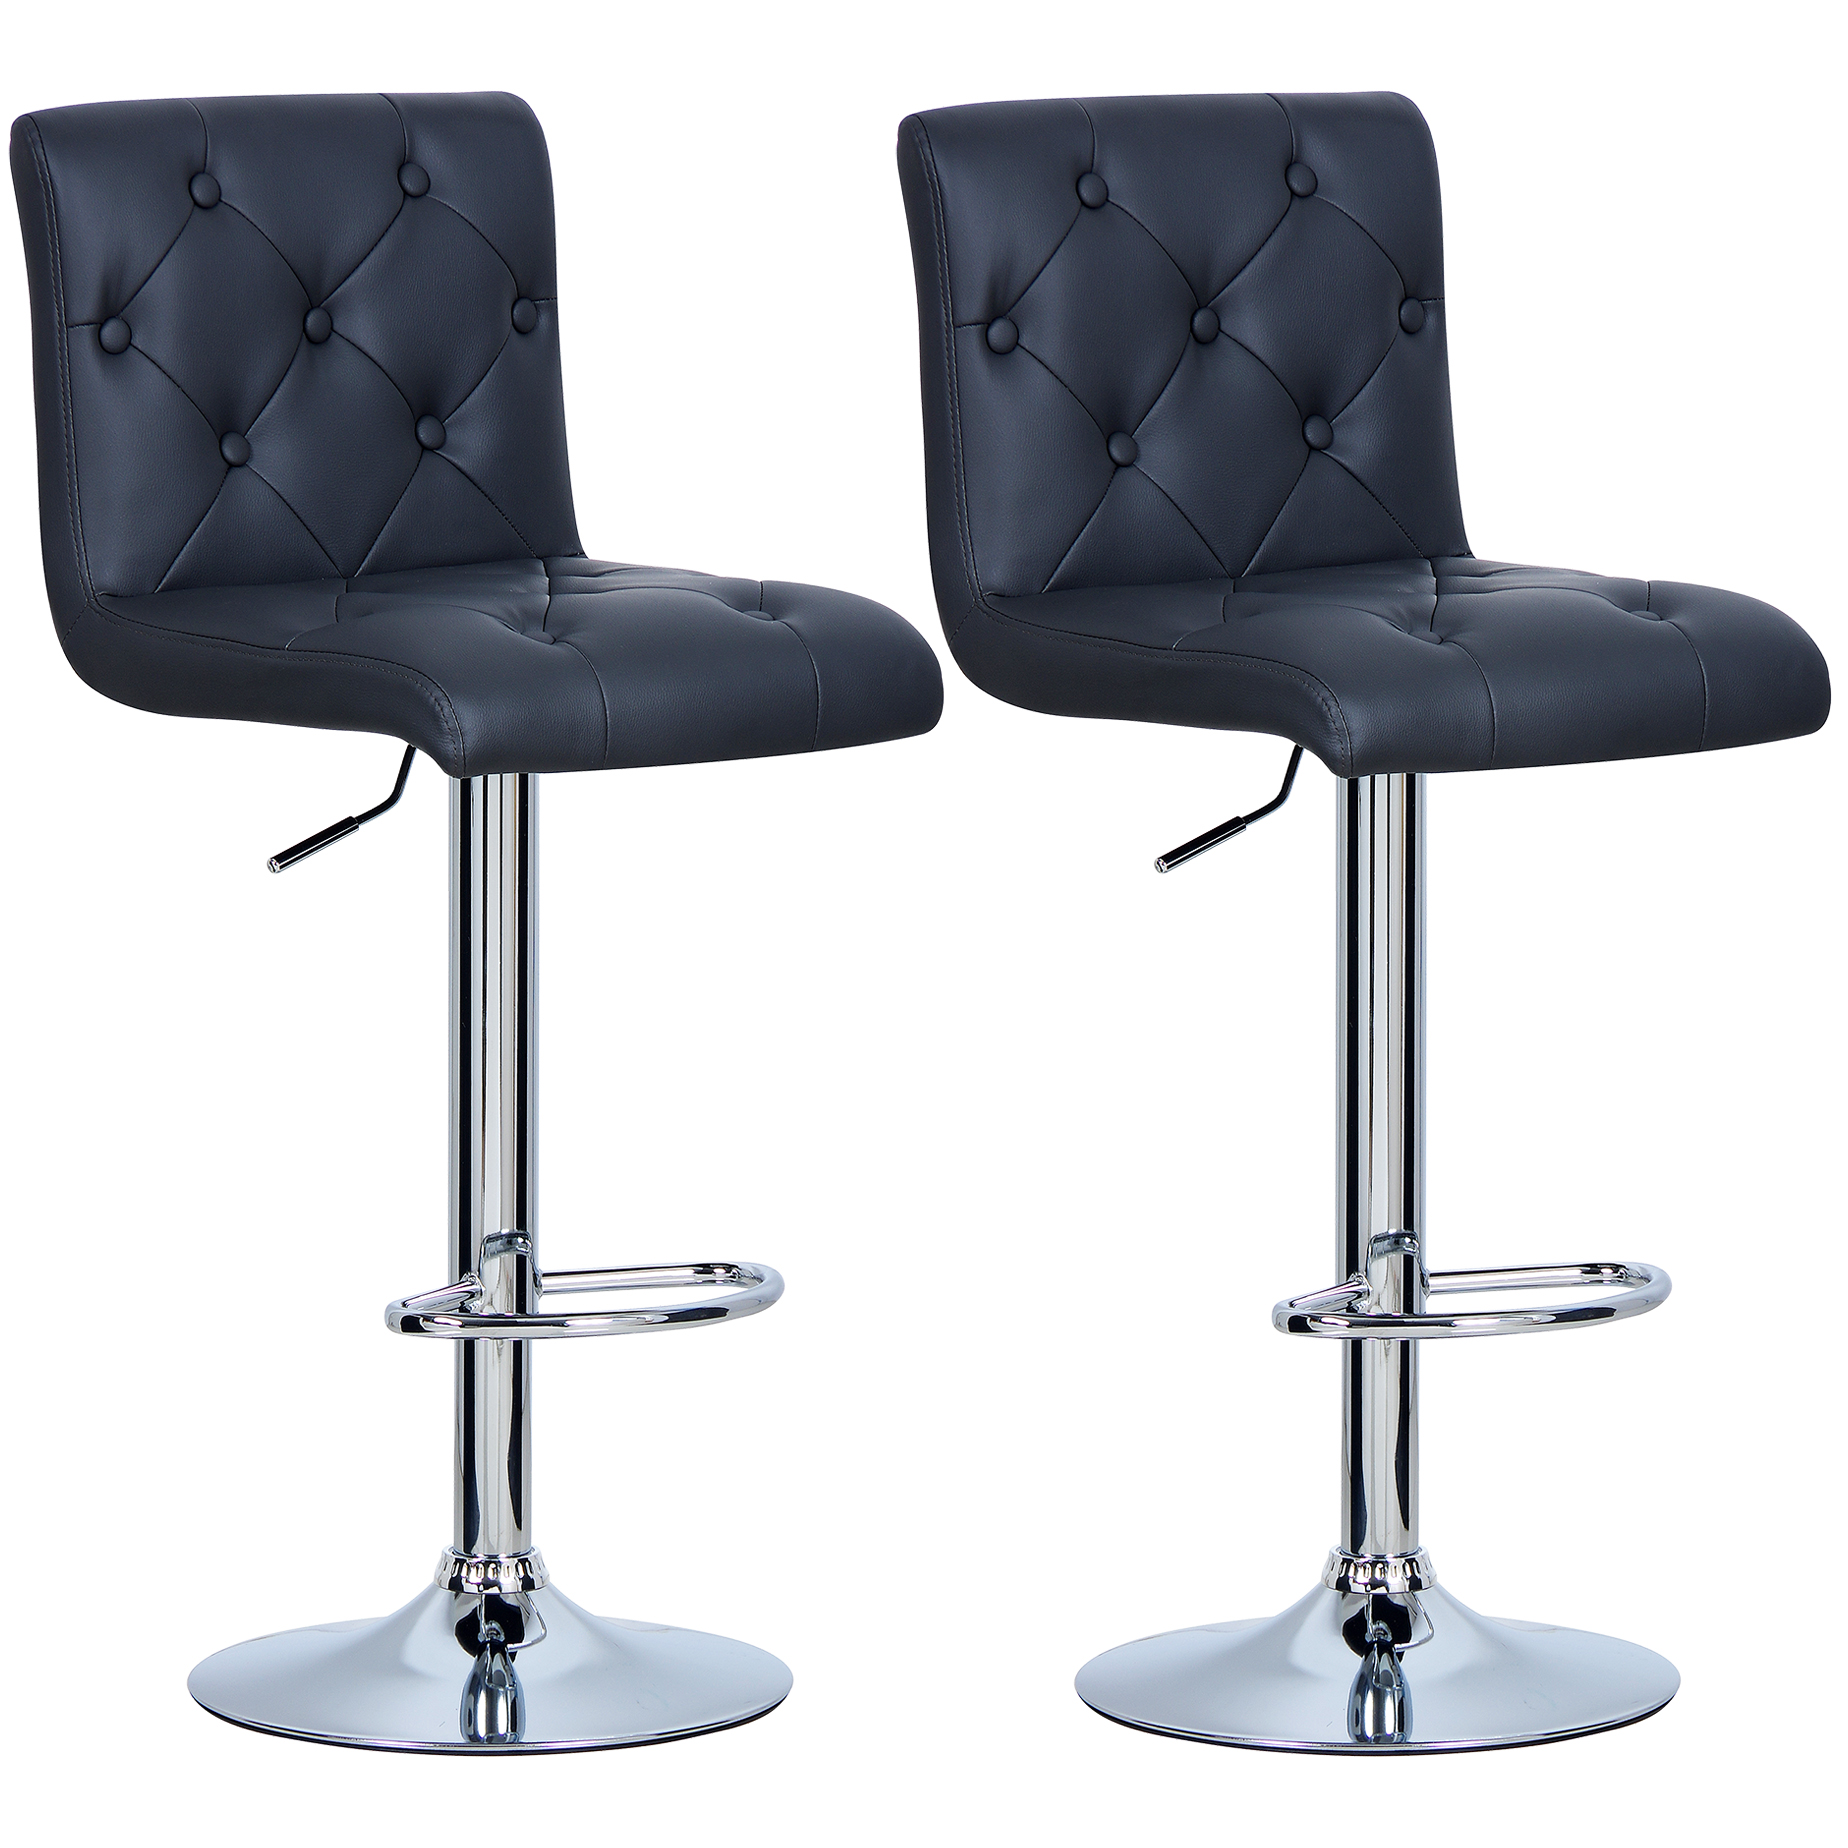 1 2 pi ce tabourets de bar en cuir synth tique chaise - Chaise bar reglable ...